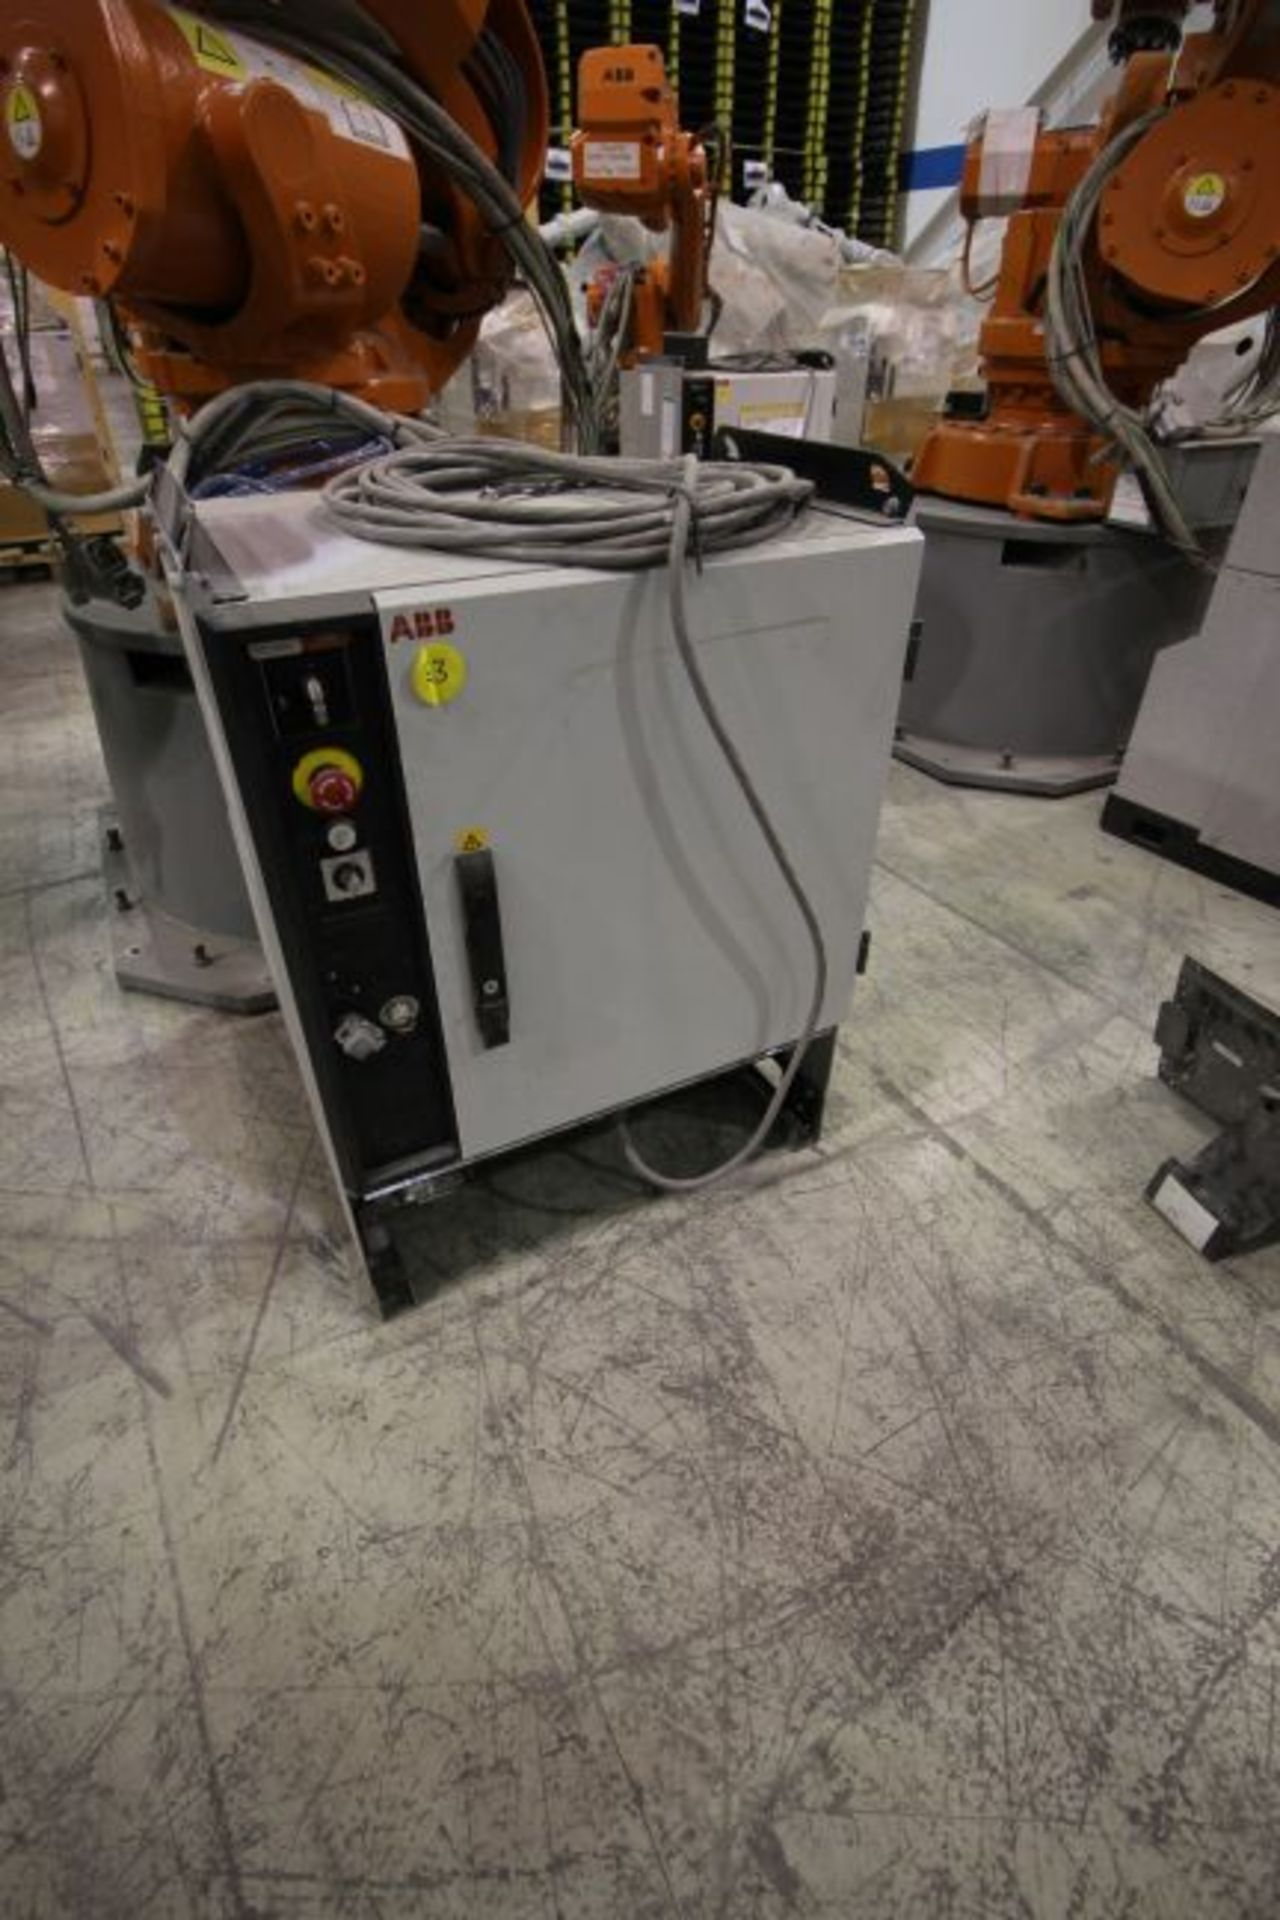 ABB ROBOT IRB 6640 2.8/185 WITH IRC5 CONTROLS, YEAR 2014, SN 503058 TEACH PENDANT & CABLES - Image 5 of 9